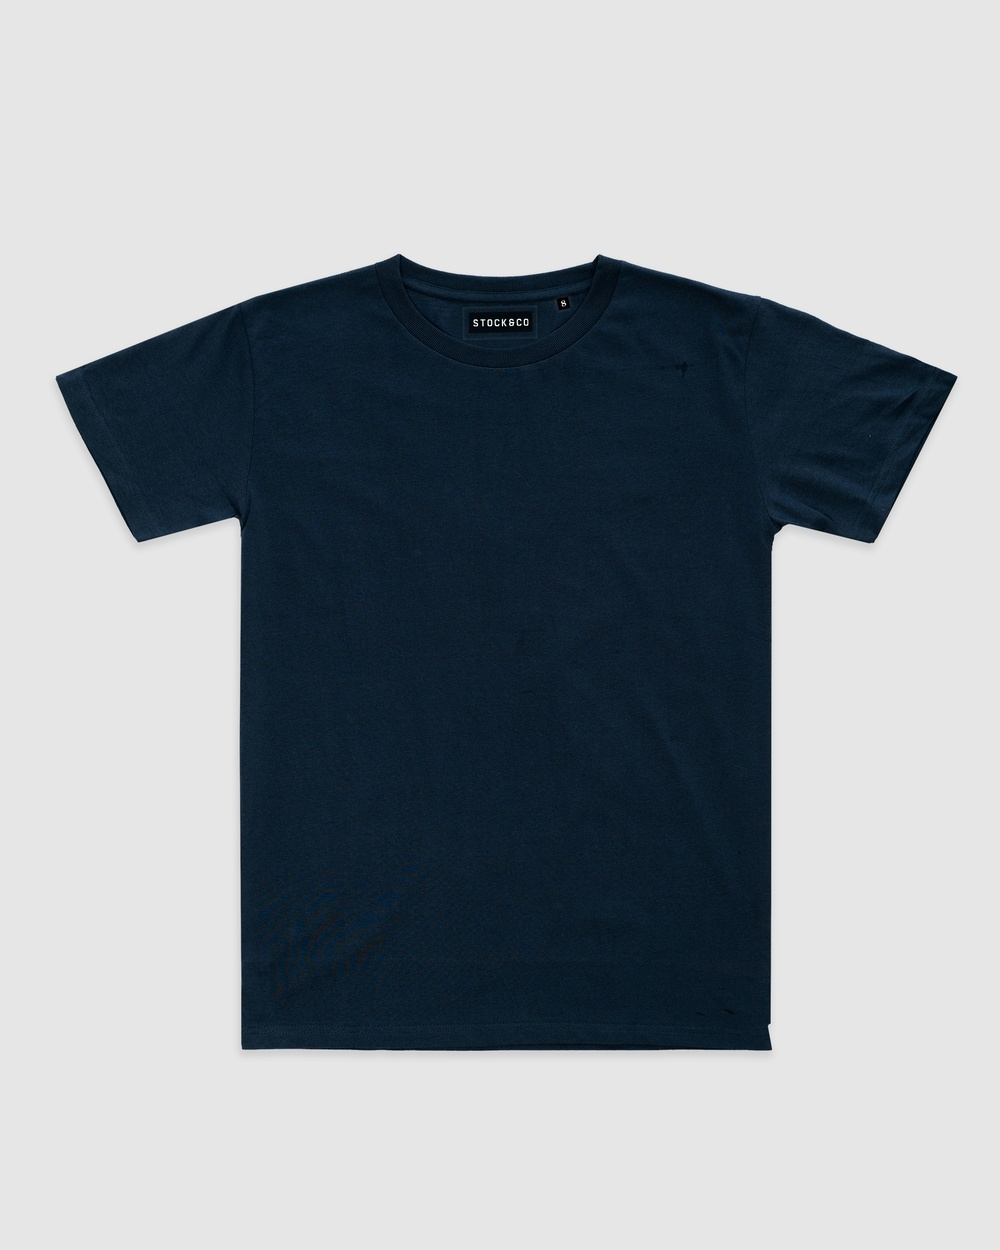 Stock & Co. - Stock Tee   Teens - T-Shirts & Singlets (NAVY) Stock Tee - Teens